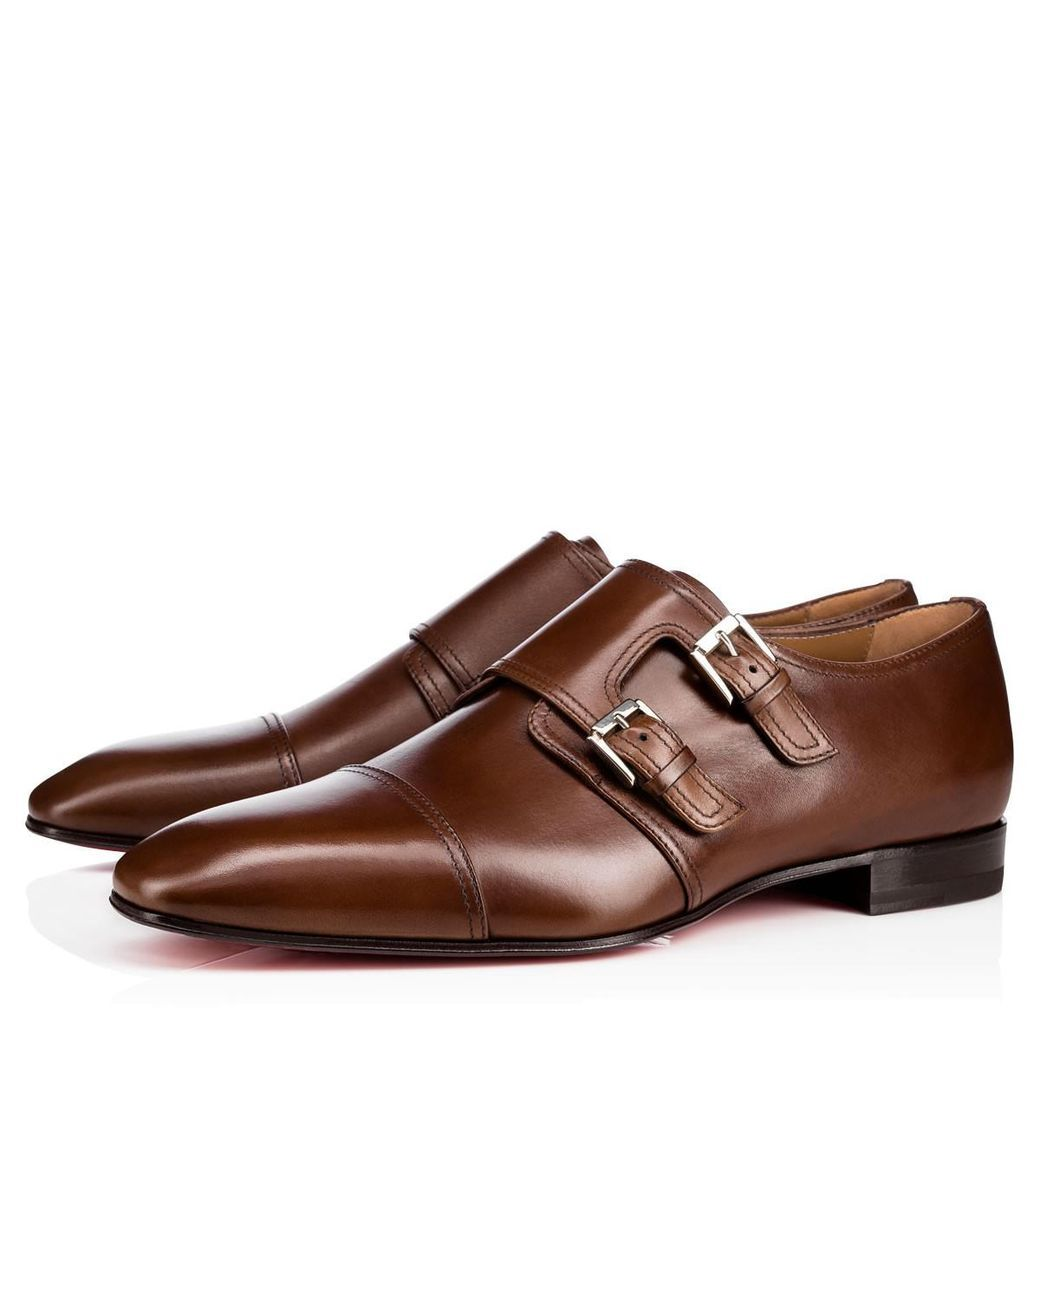 432fba1879b Men s Brown Mortimer Calf Patine Havane Calfskin in 2019